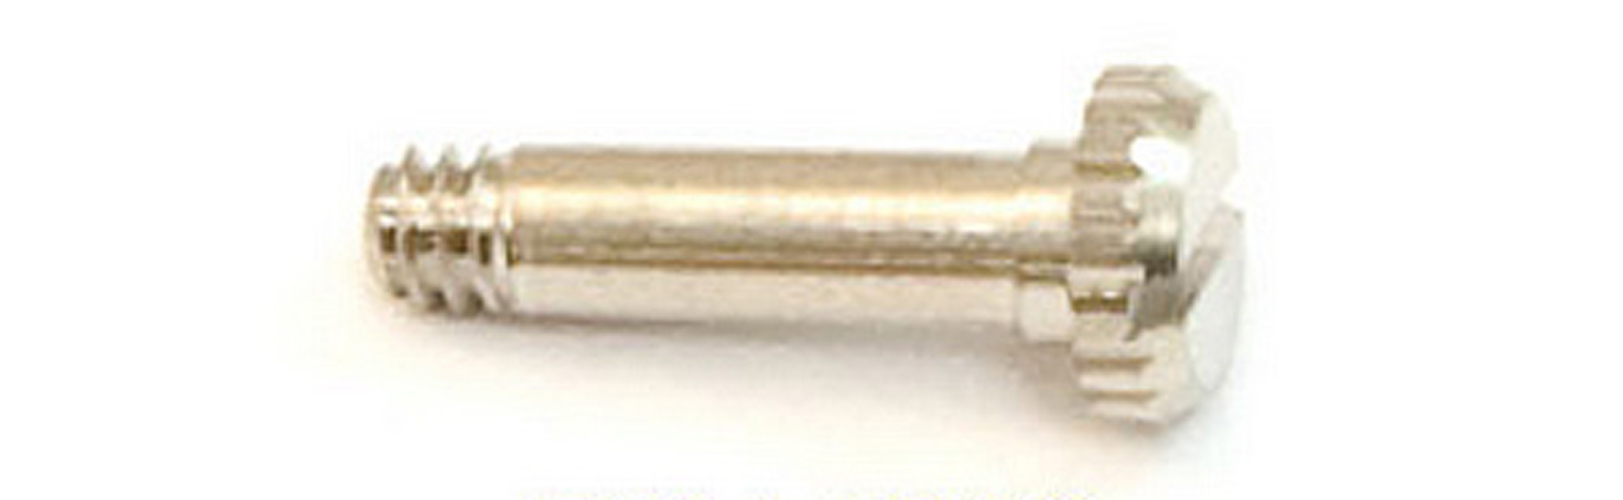 Waterkey Screw